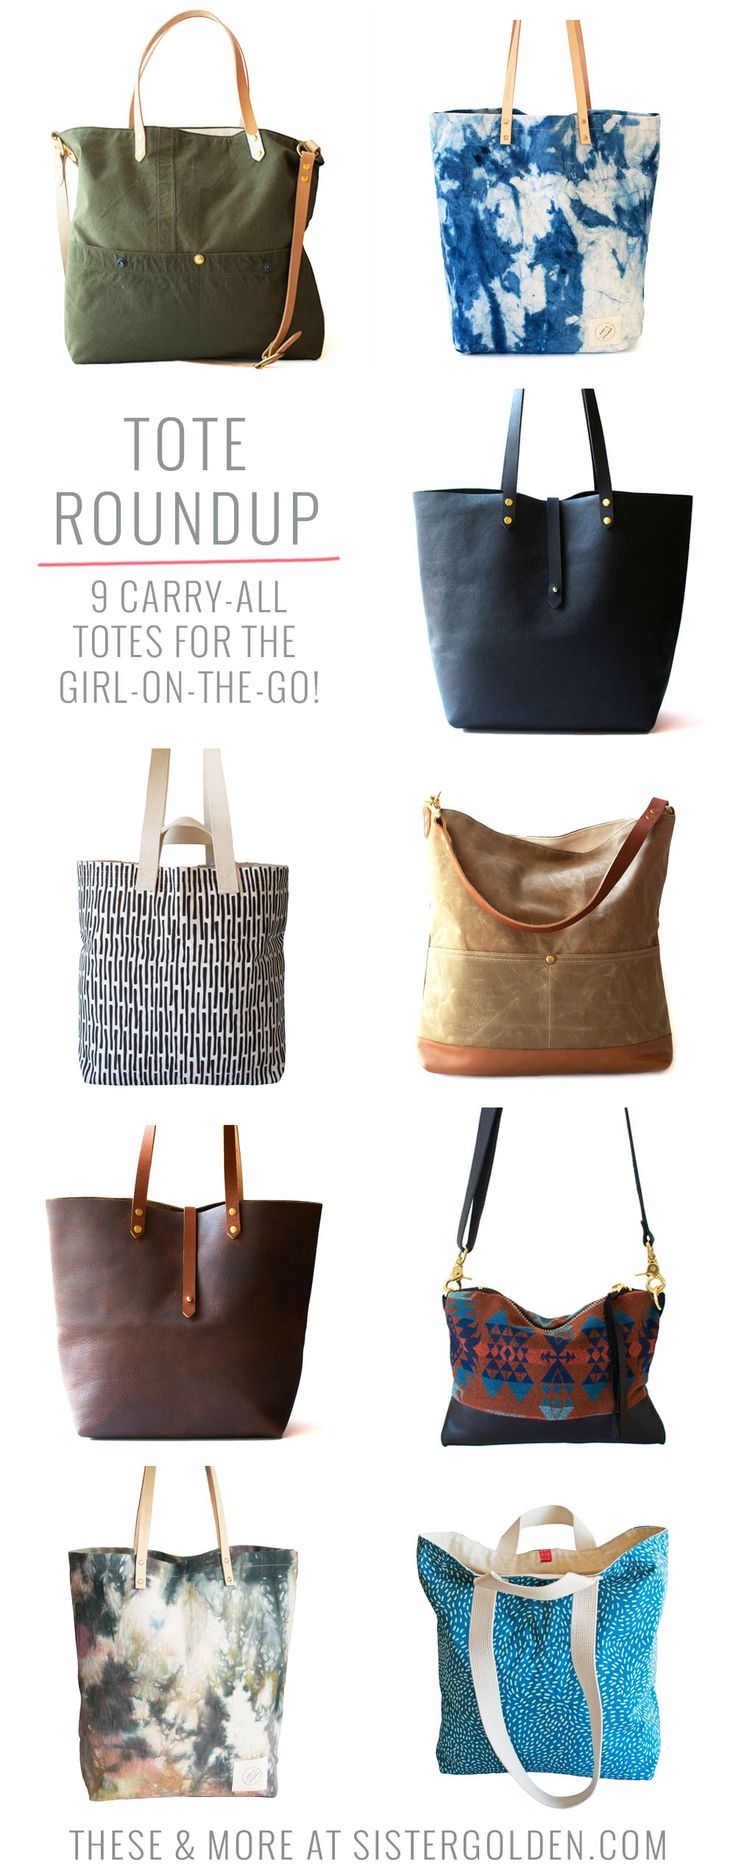 Tote Roundup! 9 carry-all totes for the girl-on-the-go!